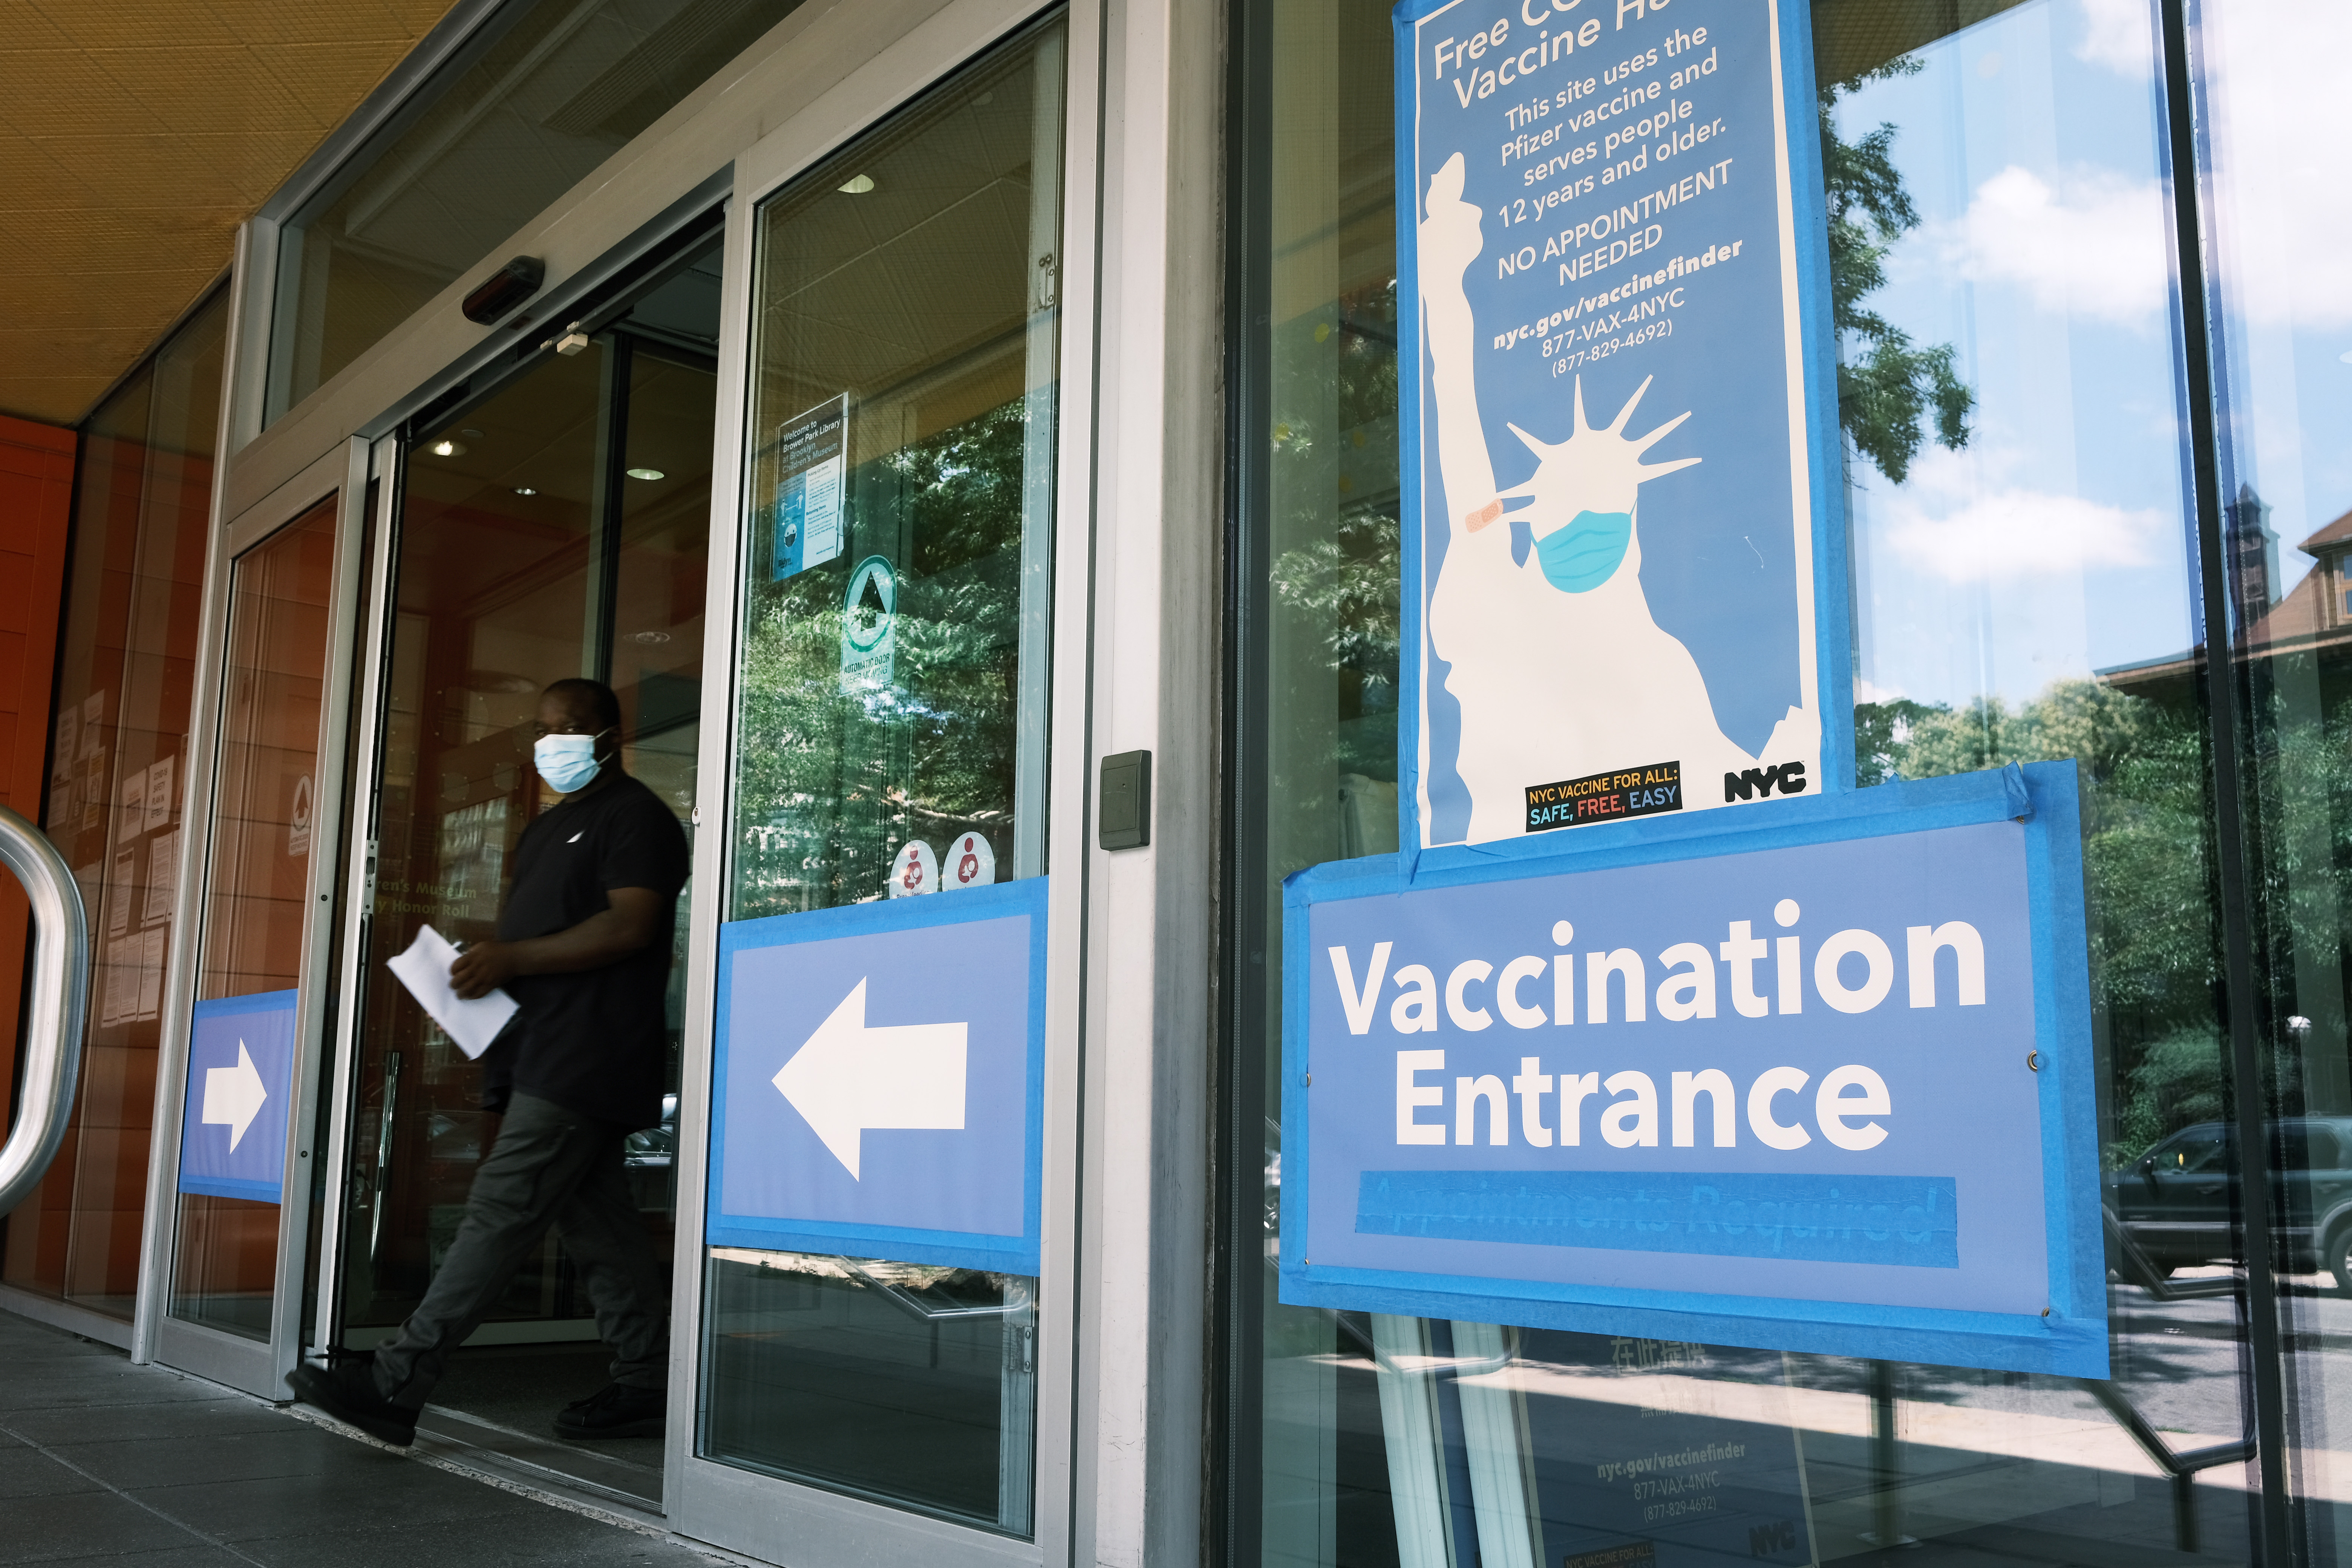 New York City Offers $100 Incentive For New Vaccinations